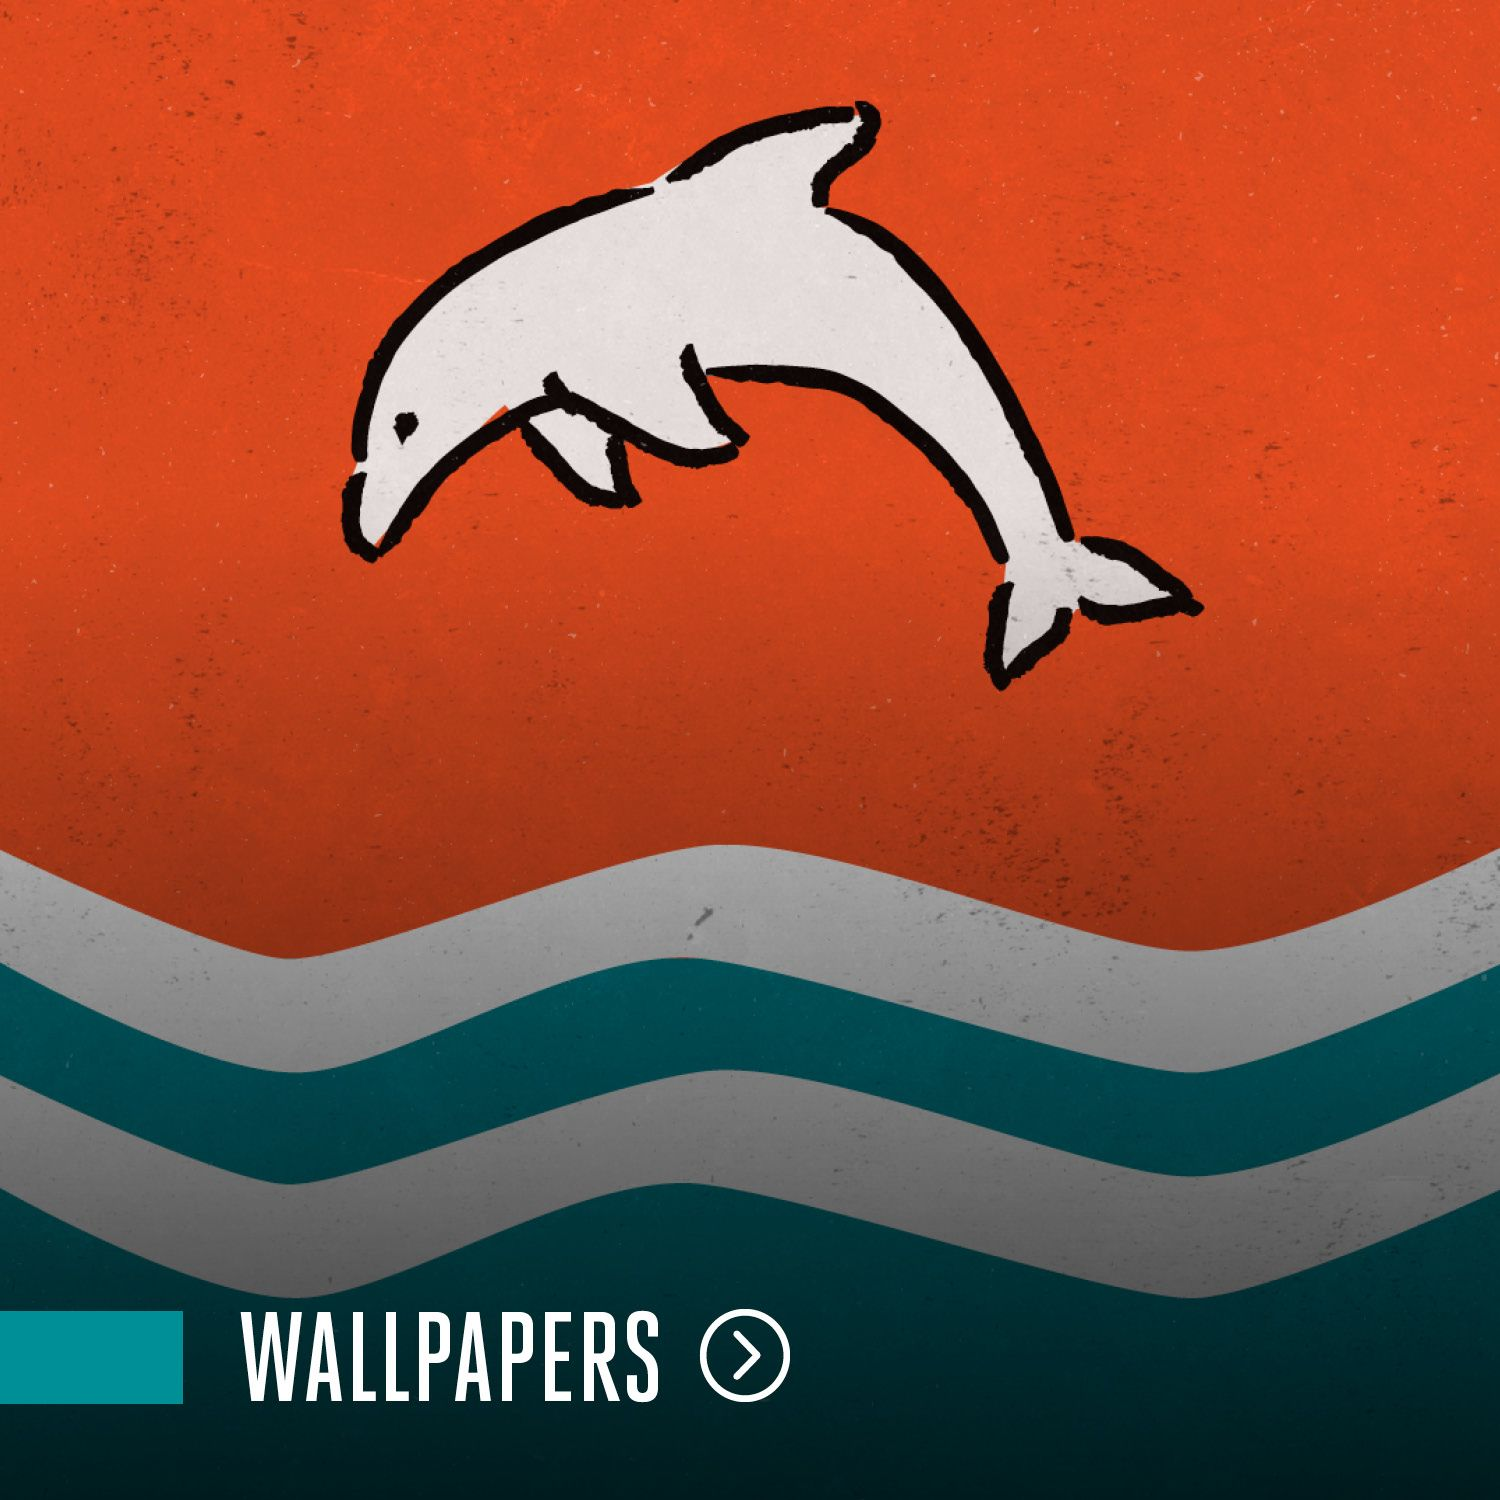 Wallpapers_FEATURES